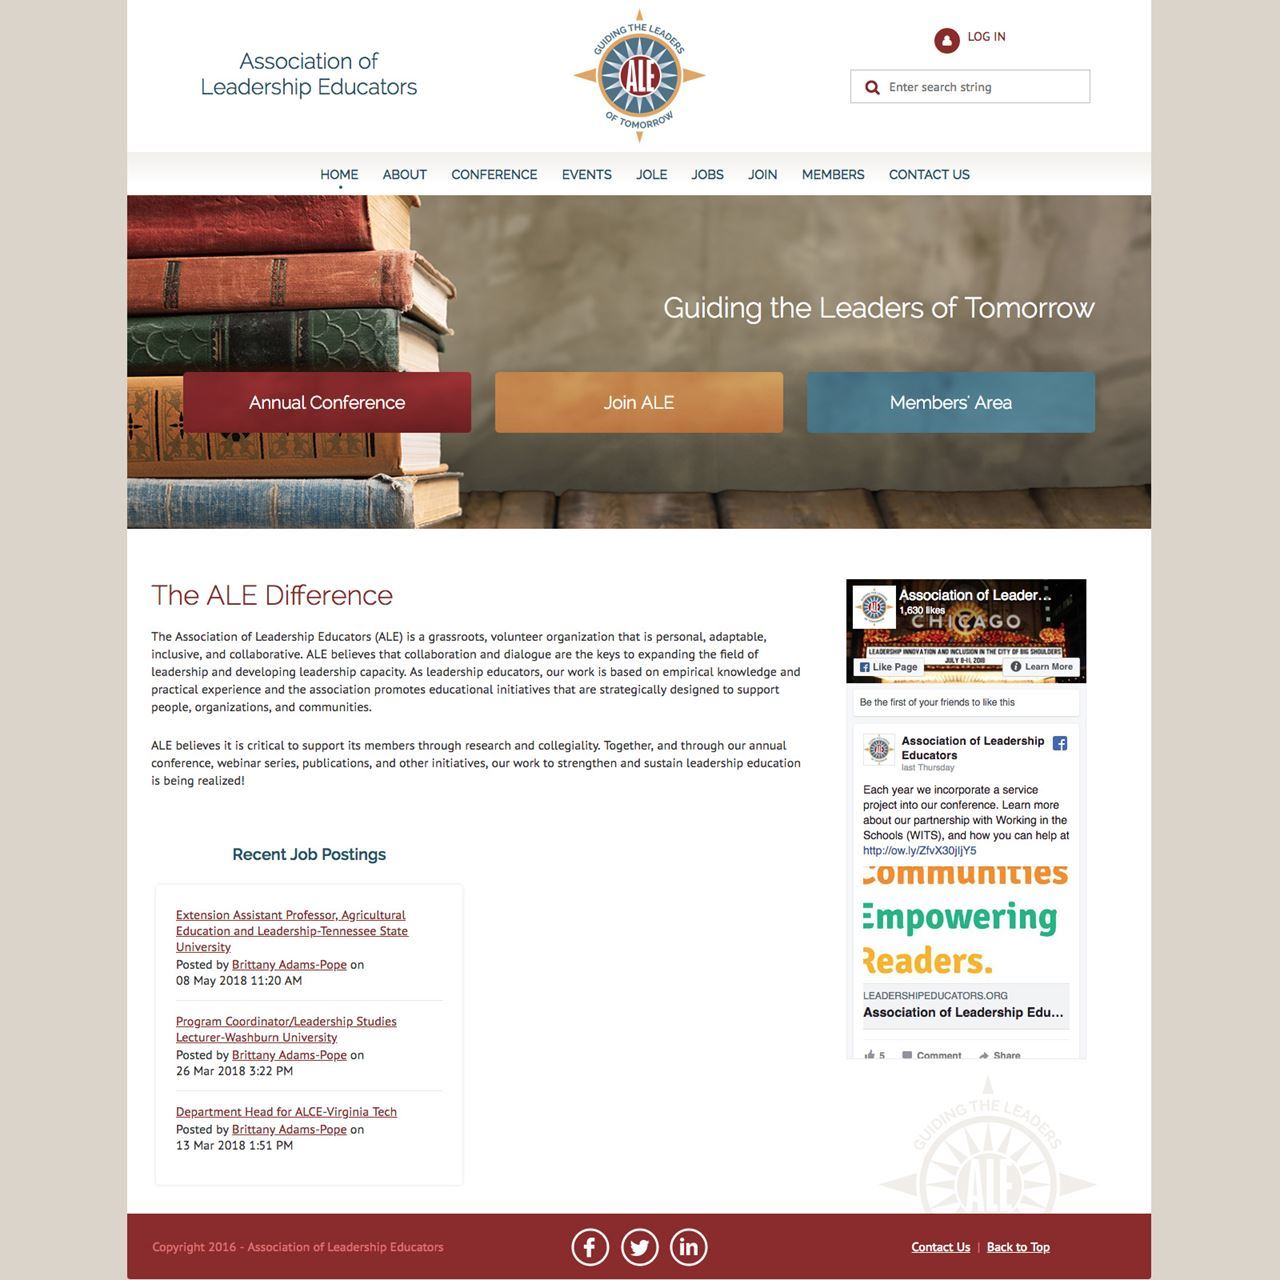 Association of Leadership Educators Website - After